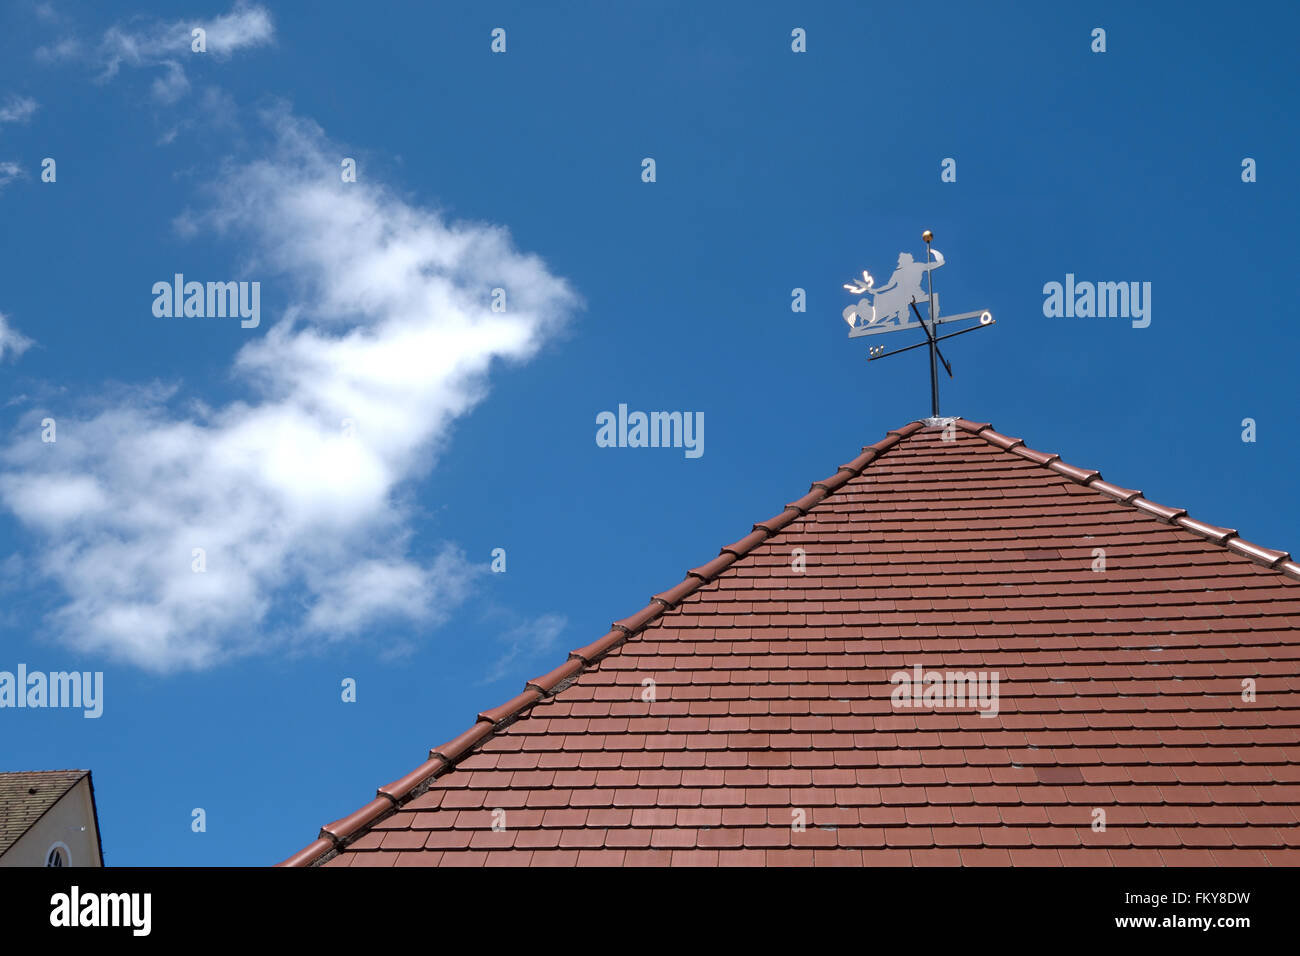 Weather vane with devil and indicator of the compass directions on a pointed roof with red roof tiles against a - Stock Image